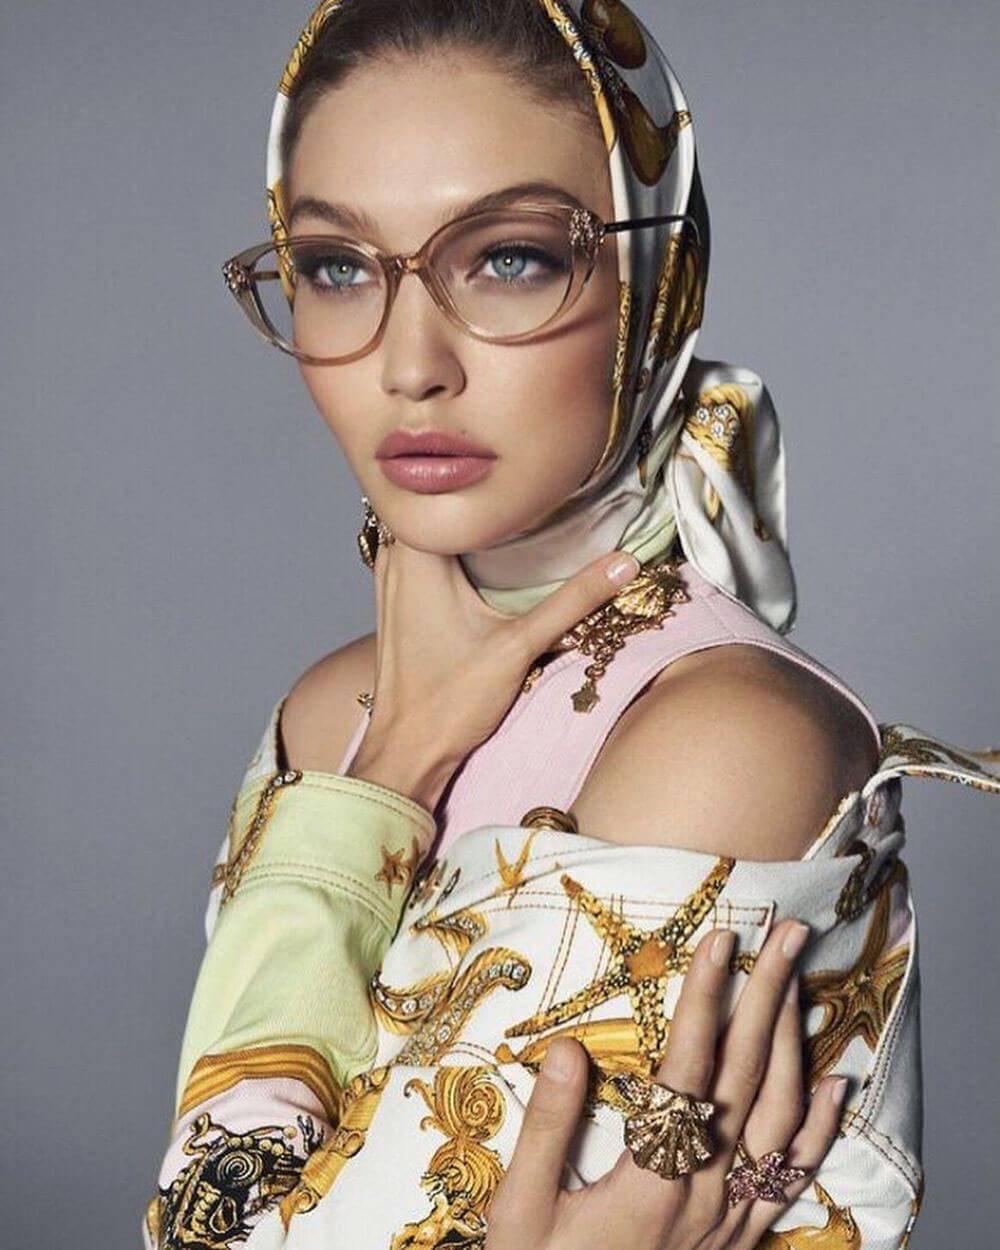 Gigi Hadid Poses for Versace Spring/Summer 2018 Campaign Photos